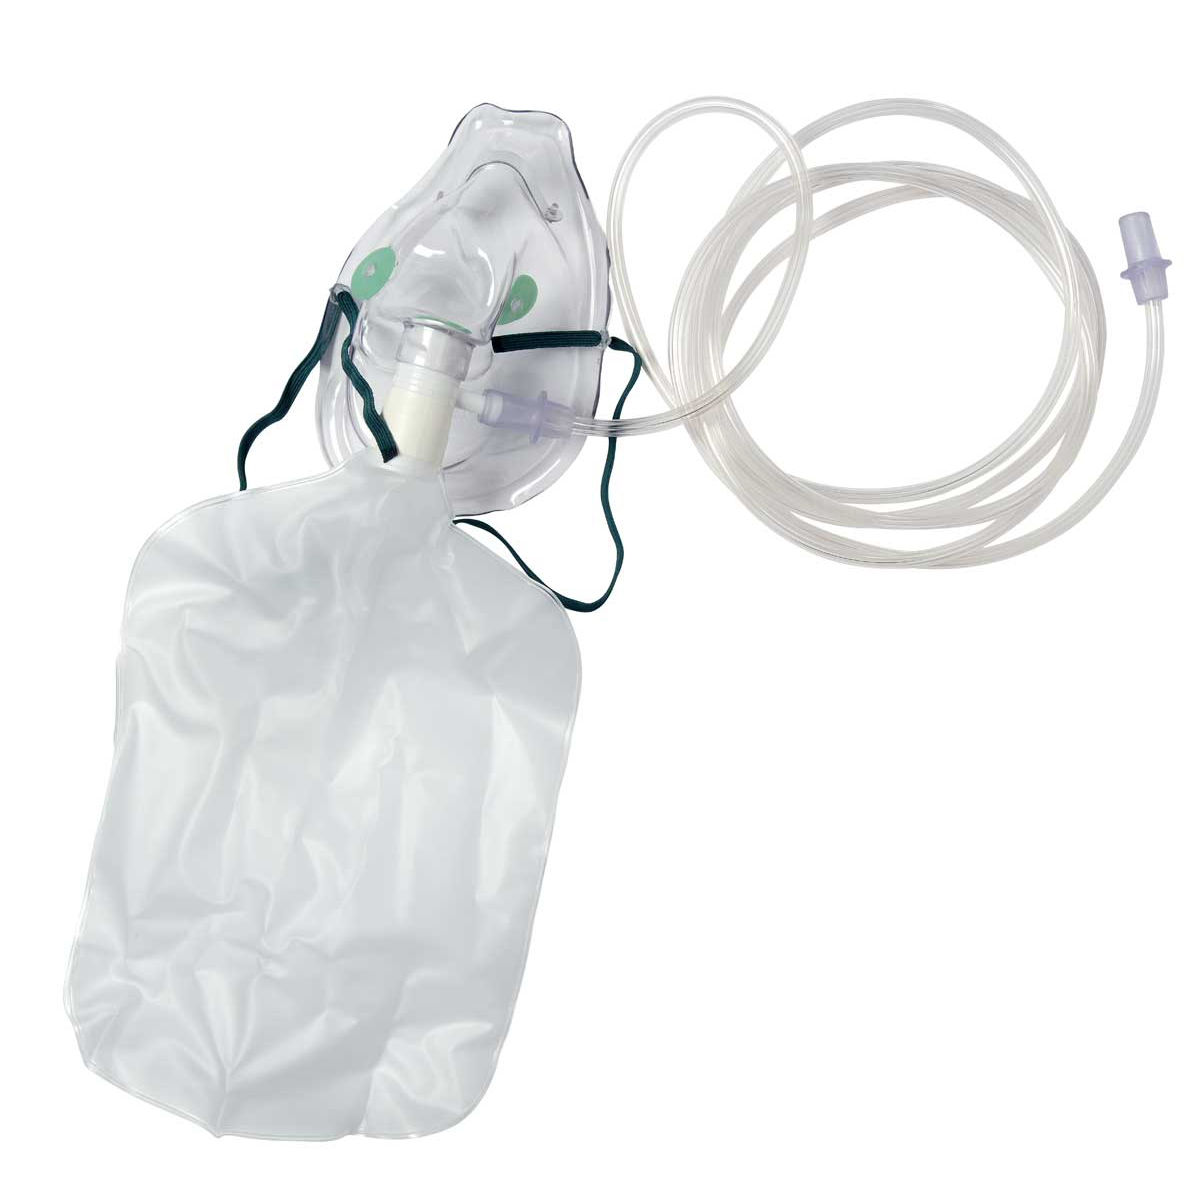 Adult High Concentration Non-Rebreathing Oxygen Mask and Tubing